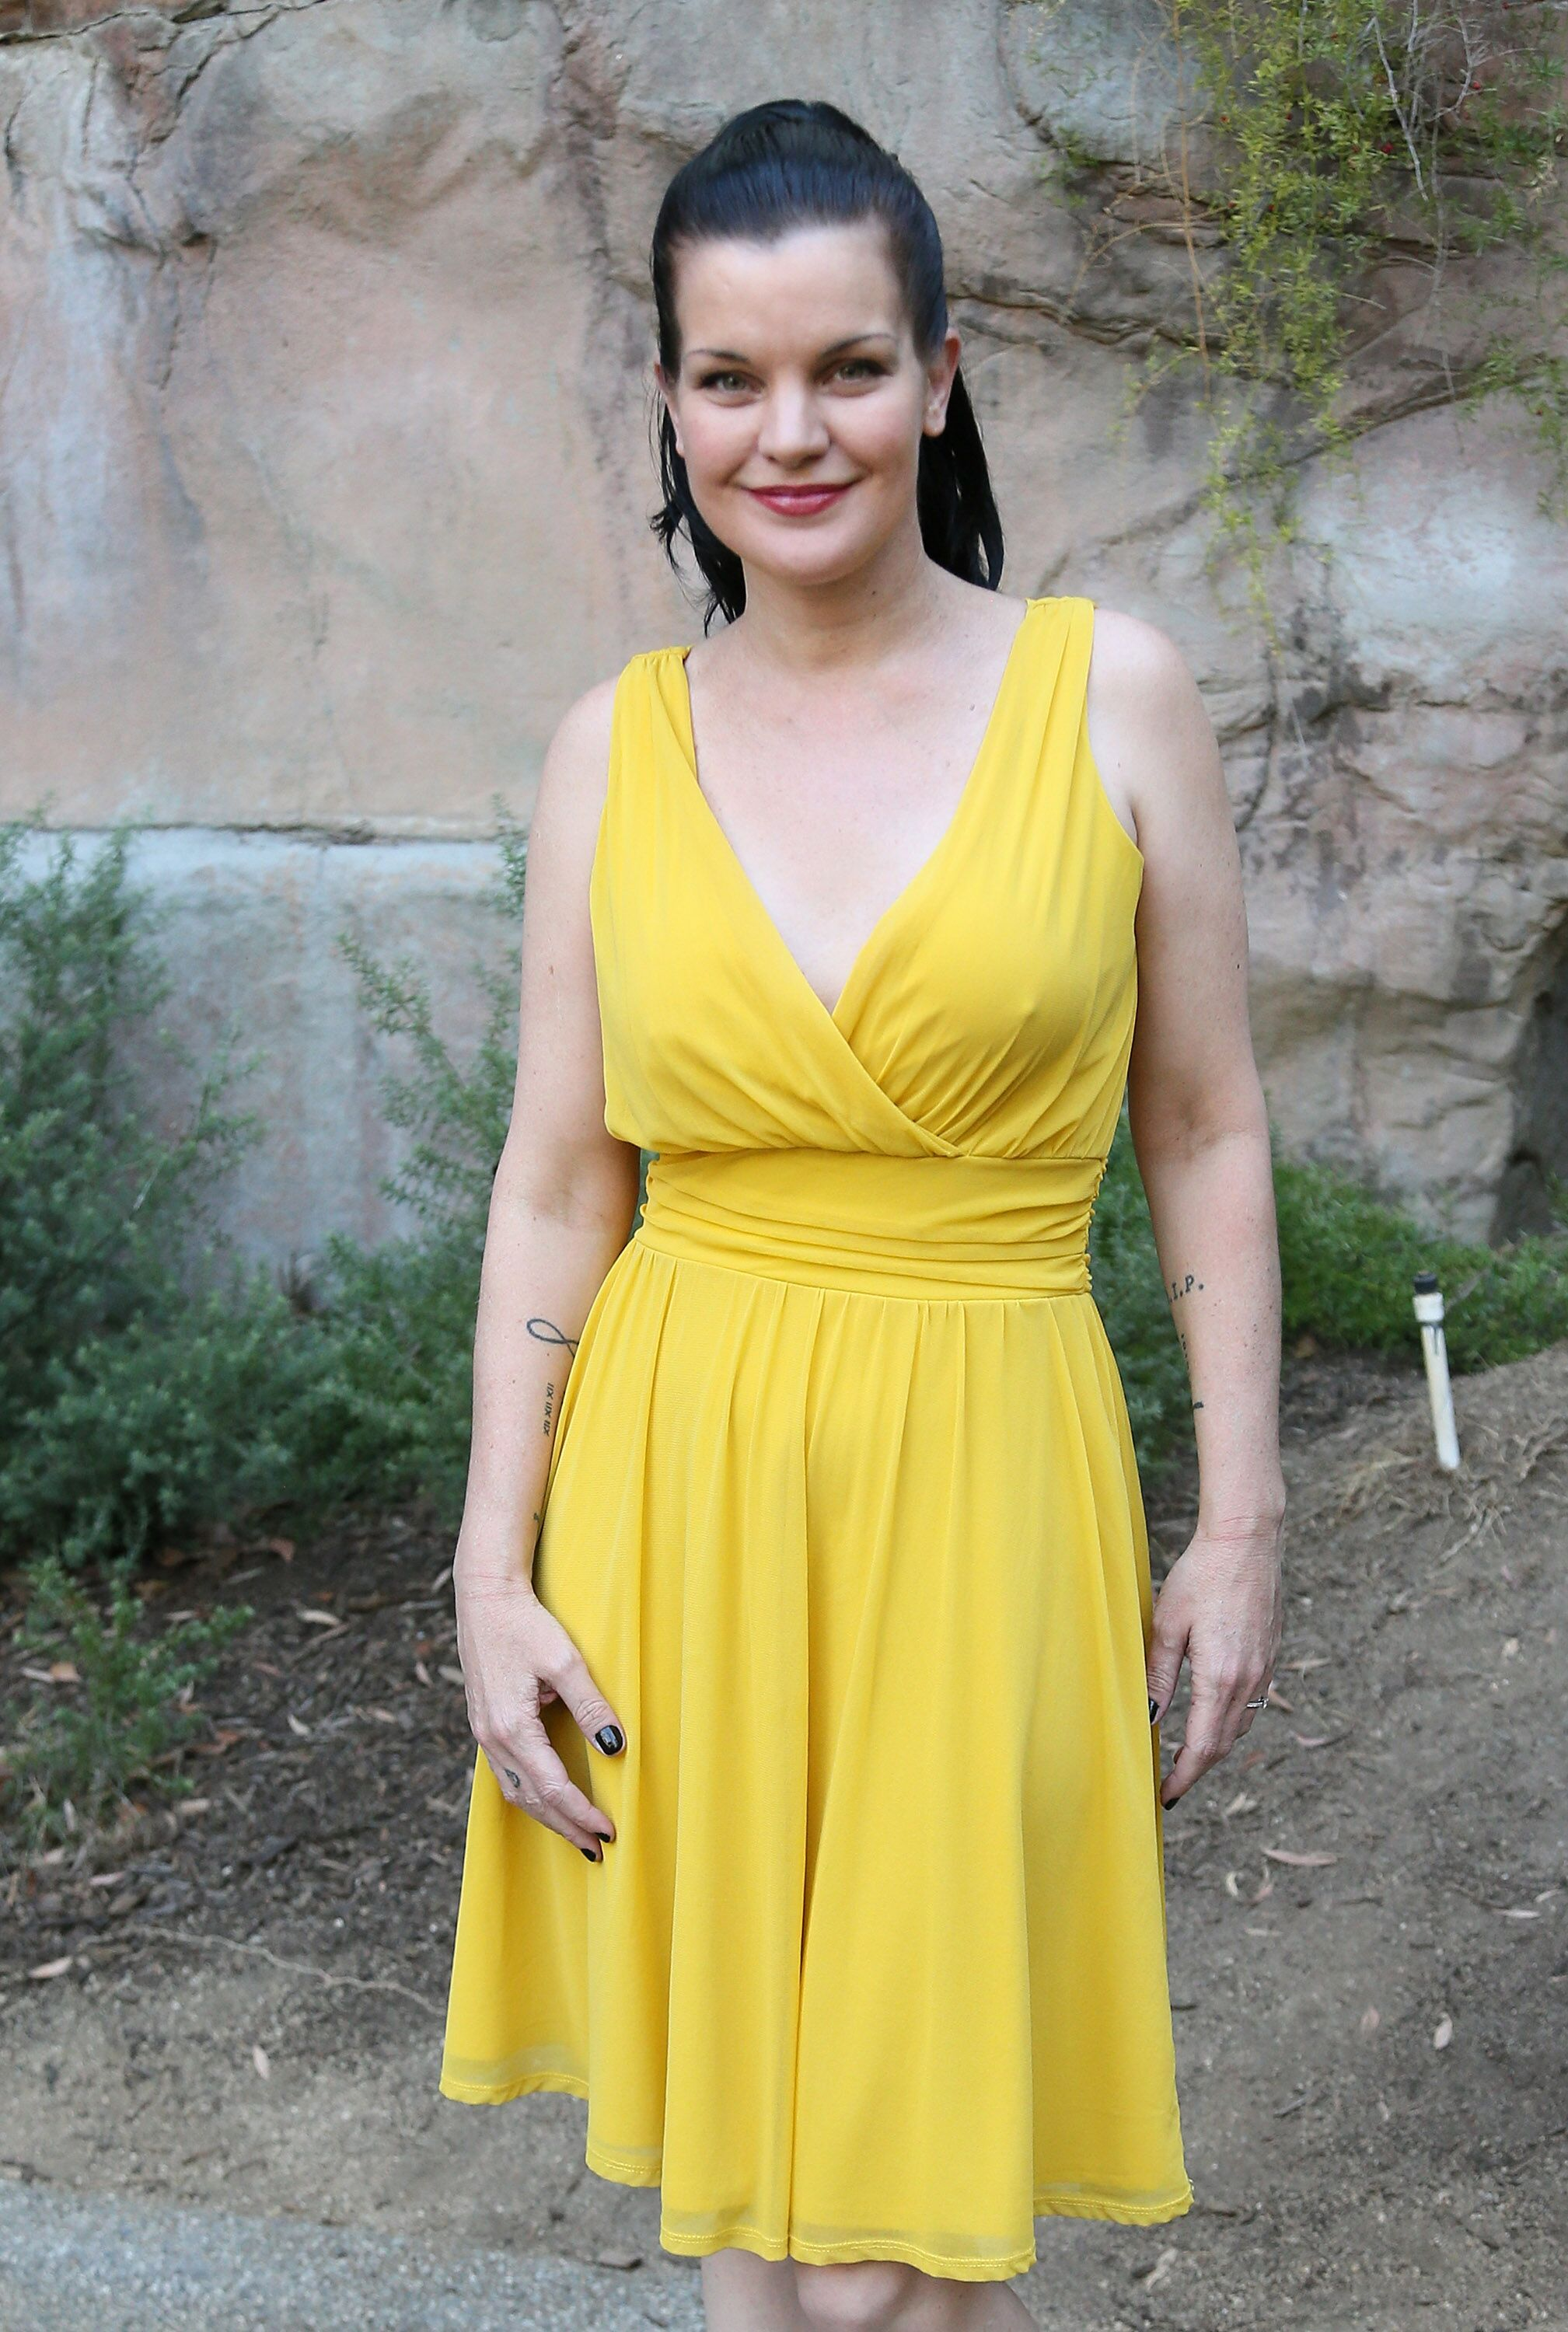 Pauley Perrette at the Greater Los Angeles Zoo Association's (GLAZA) 45th Annual Beastly Ball on June 20, 2015, in Los Angeles, California | Photo: David Livingston/Getty Images